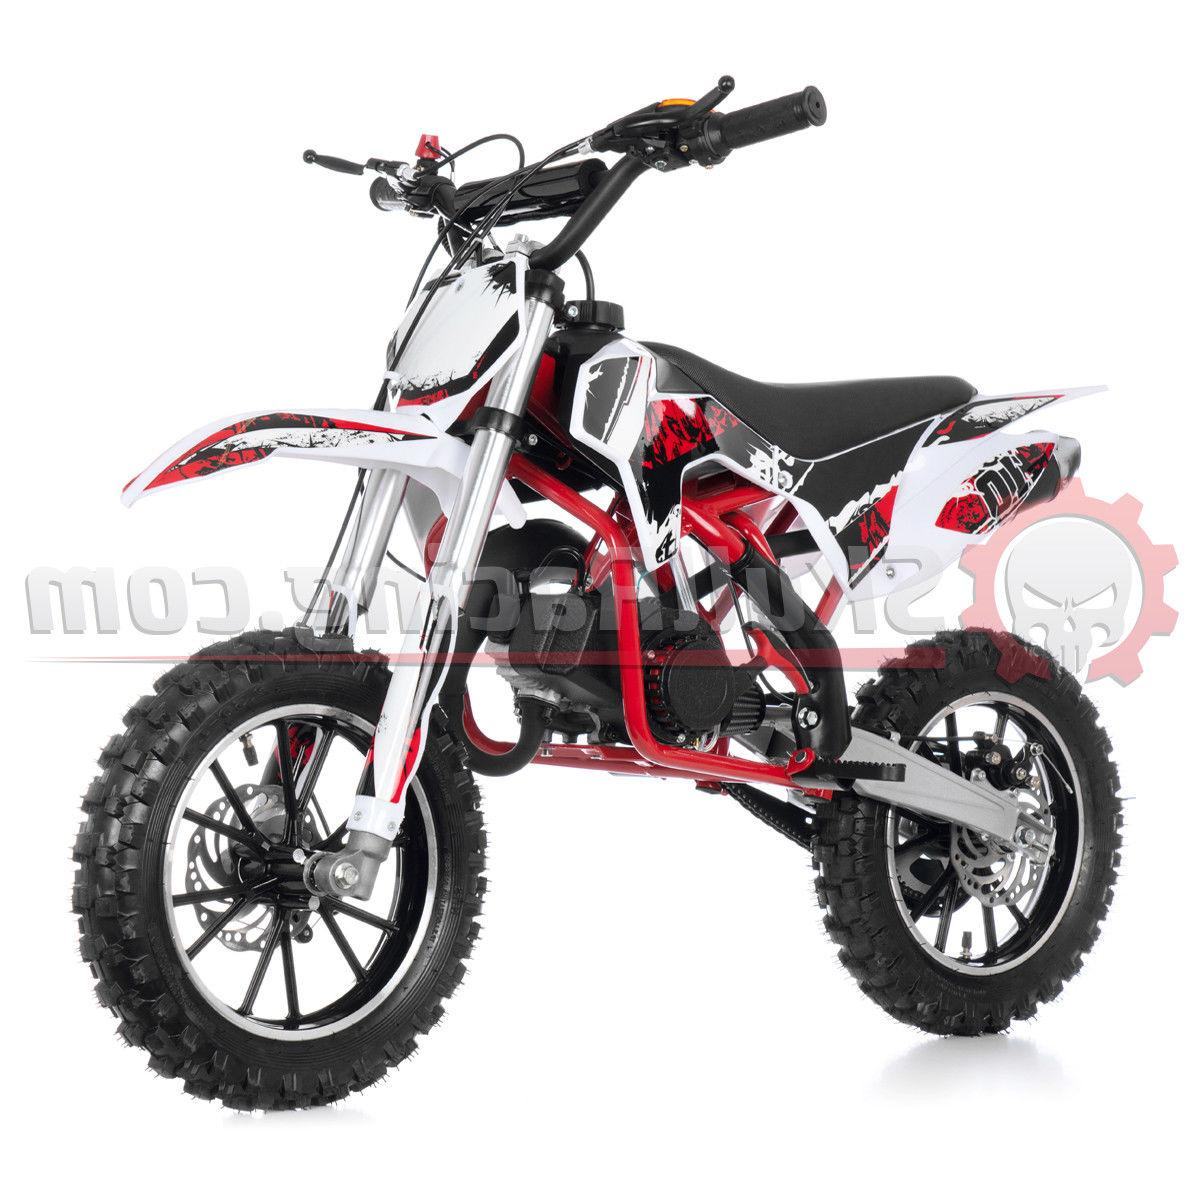 SkullRacing Powered Kids Mini Bike 50RR